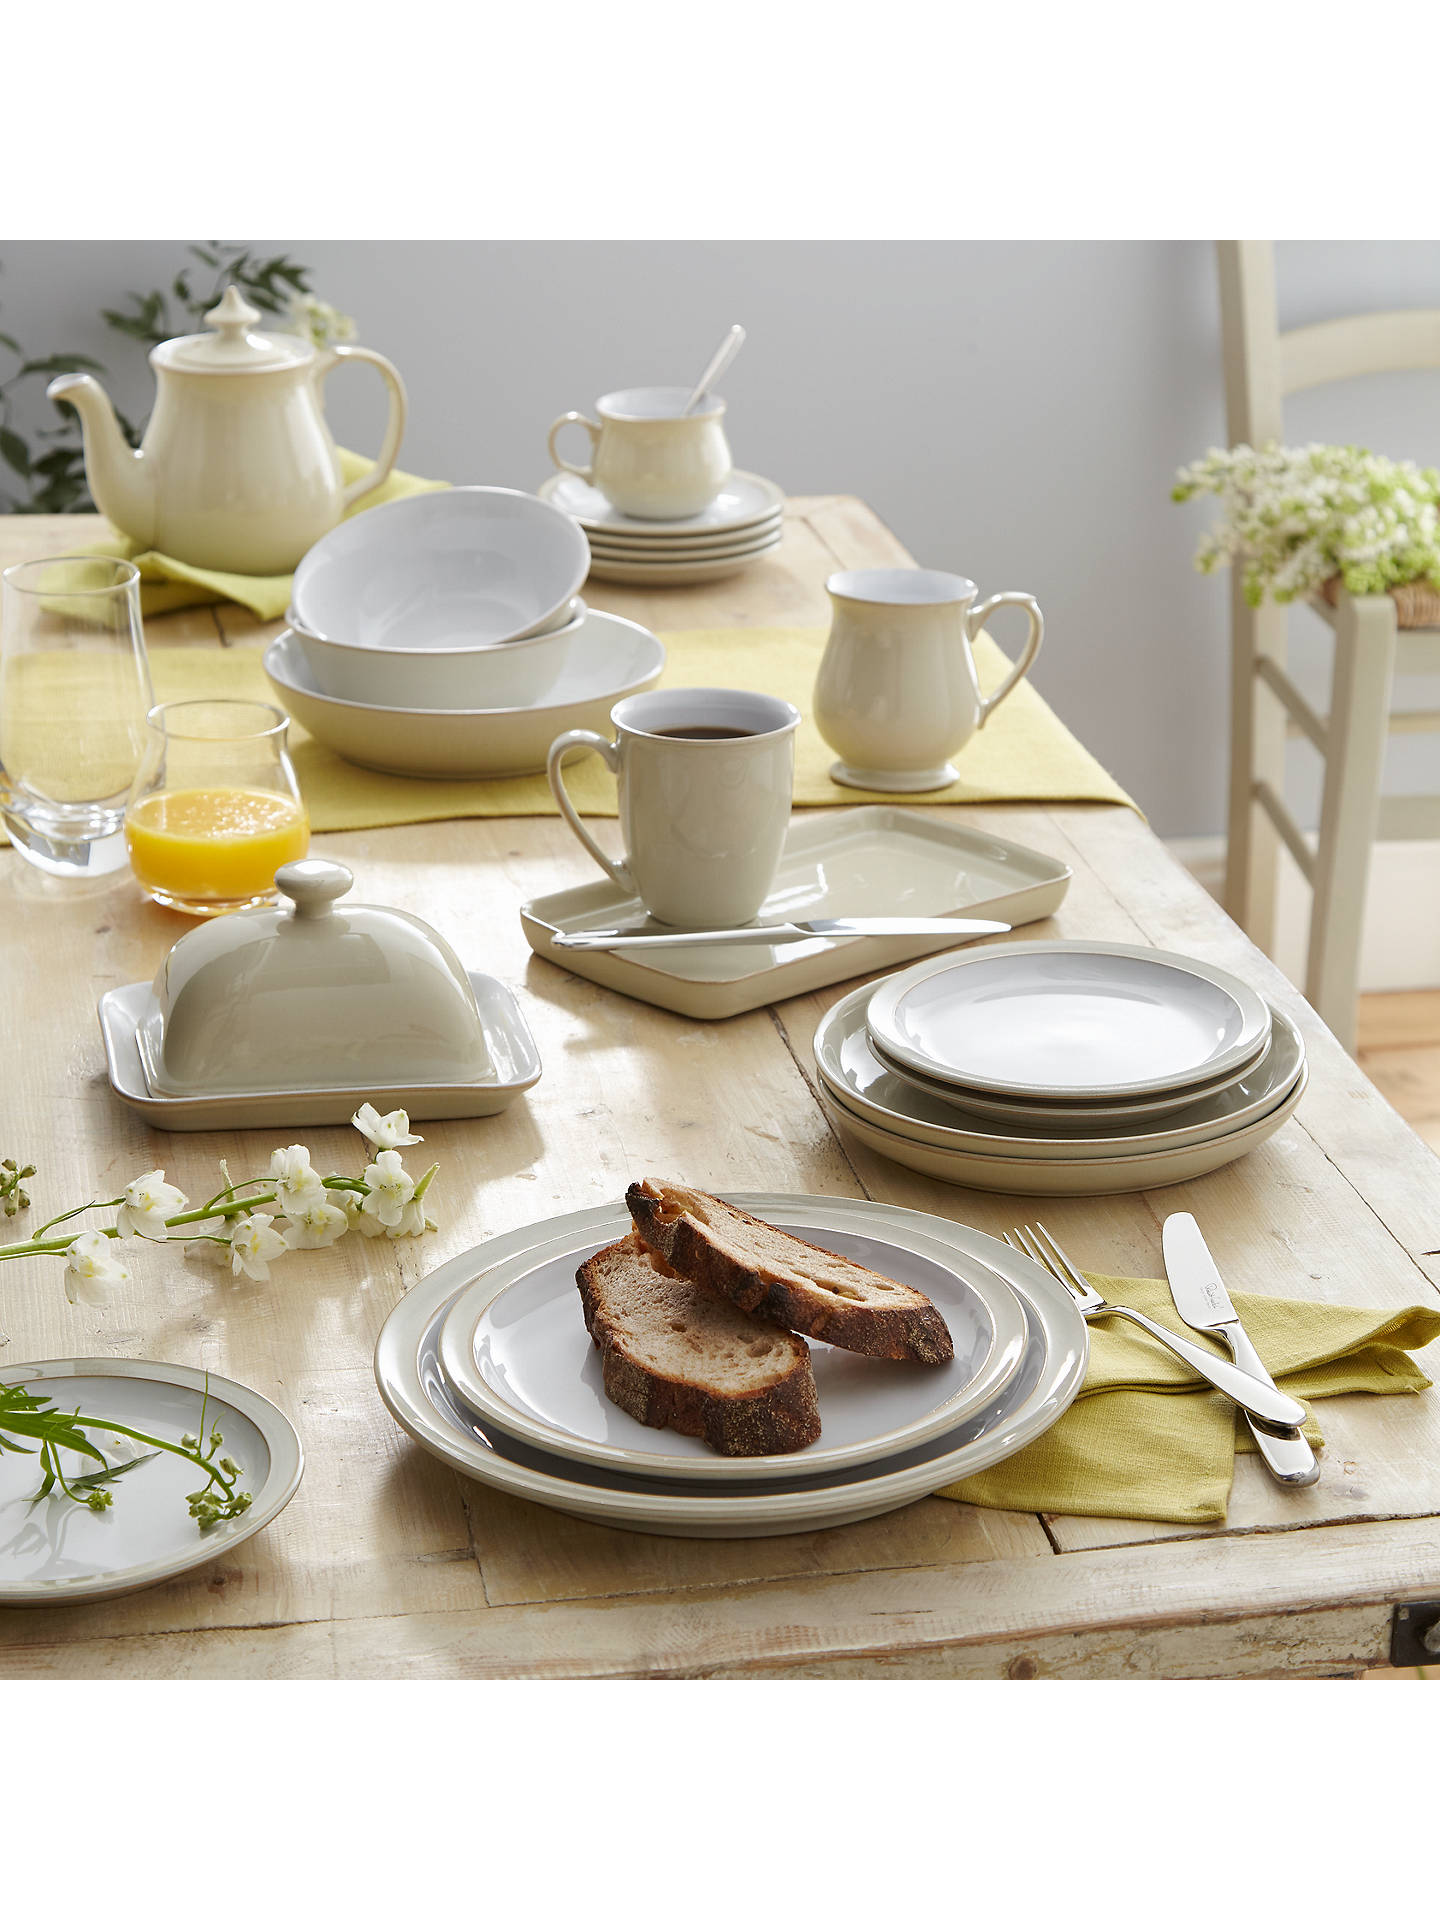 BuyRobert Welch Stanton Side Fork Online at johnlewis.com